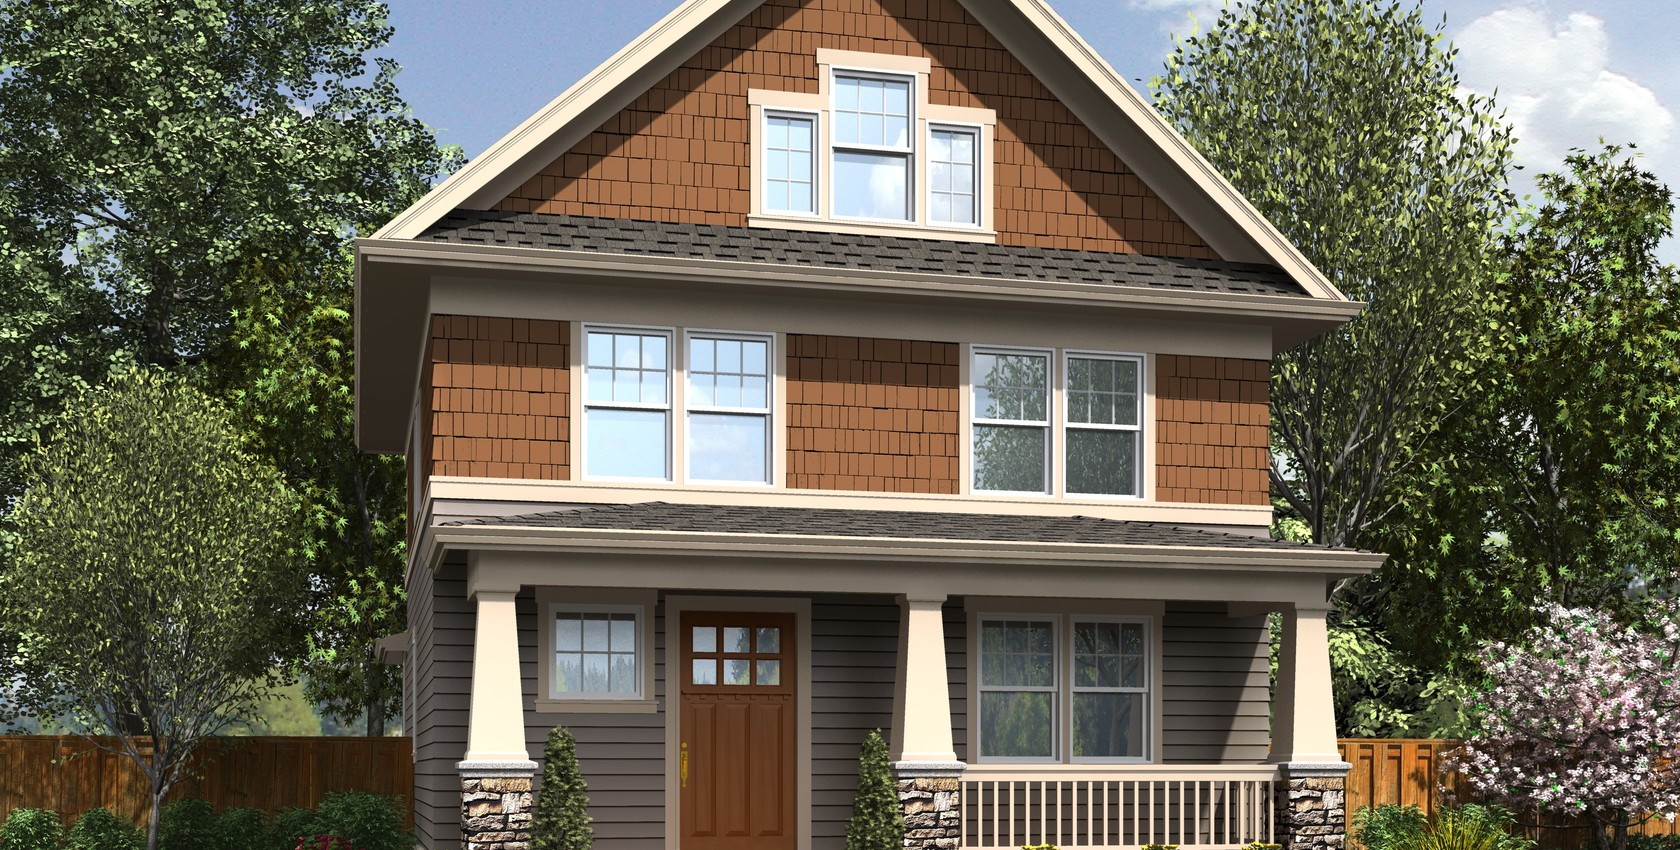 Image for Darlington-The Perfect Seaside Cottage or Starter Home -5793